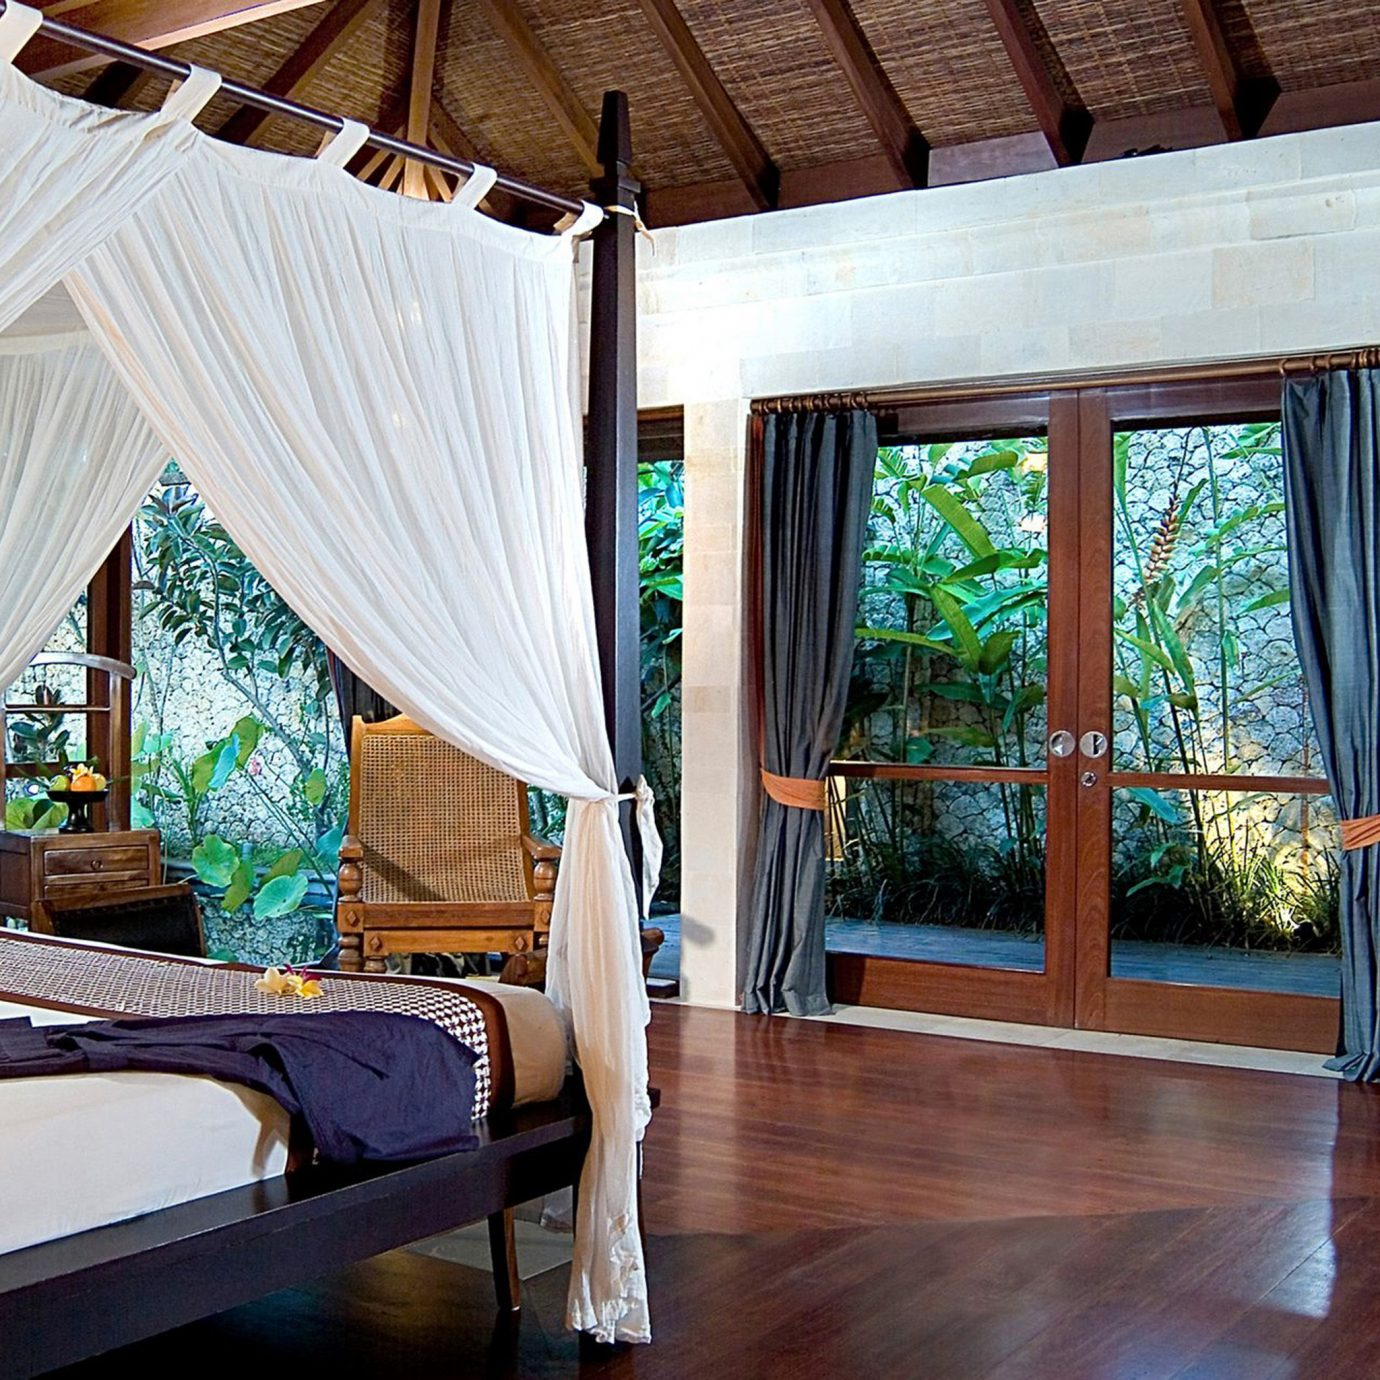 Bedroom Hip Lounge Luxury Modern Suite property house curtain Resort home Villa cottage living room